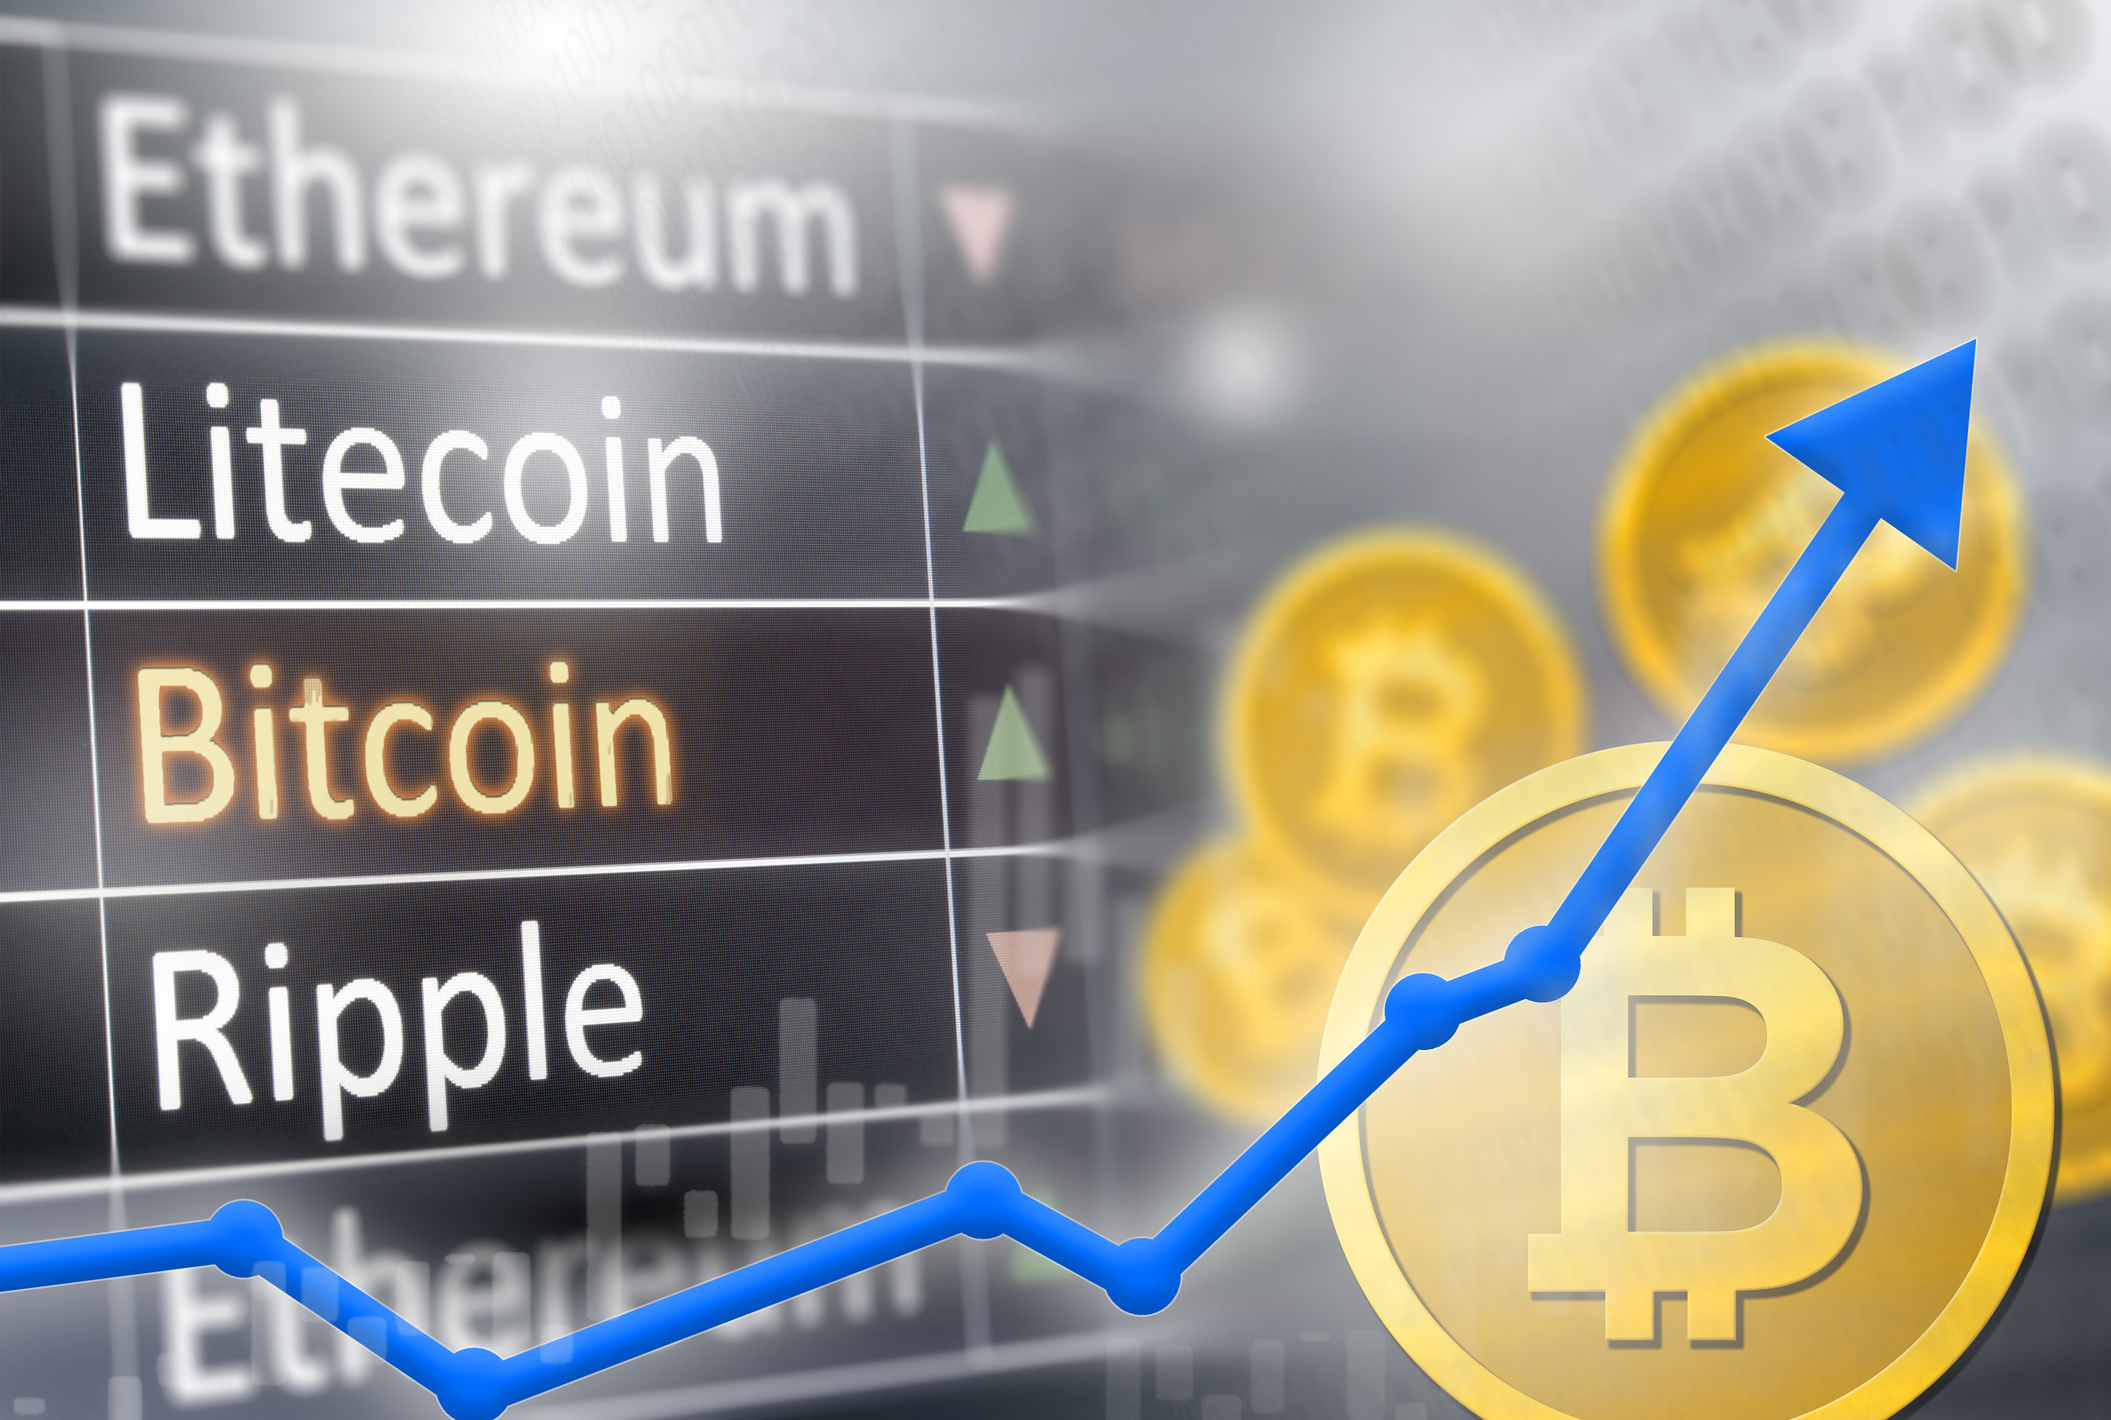 Bitcoin price increase.  Financial gain and market upswing for crypto values.